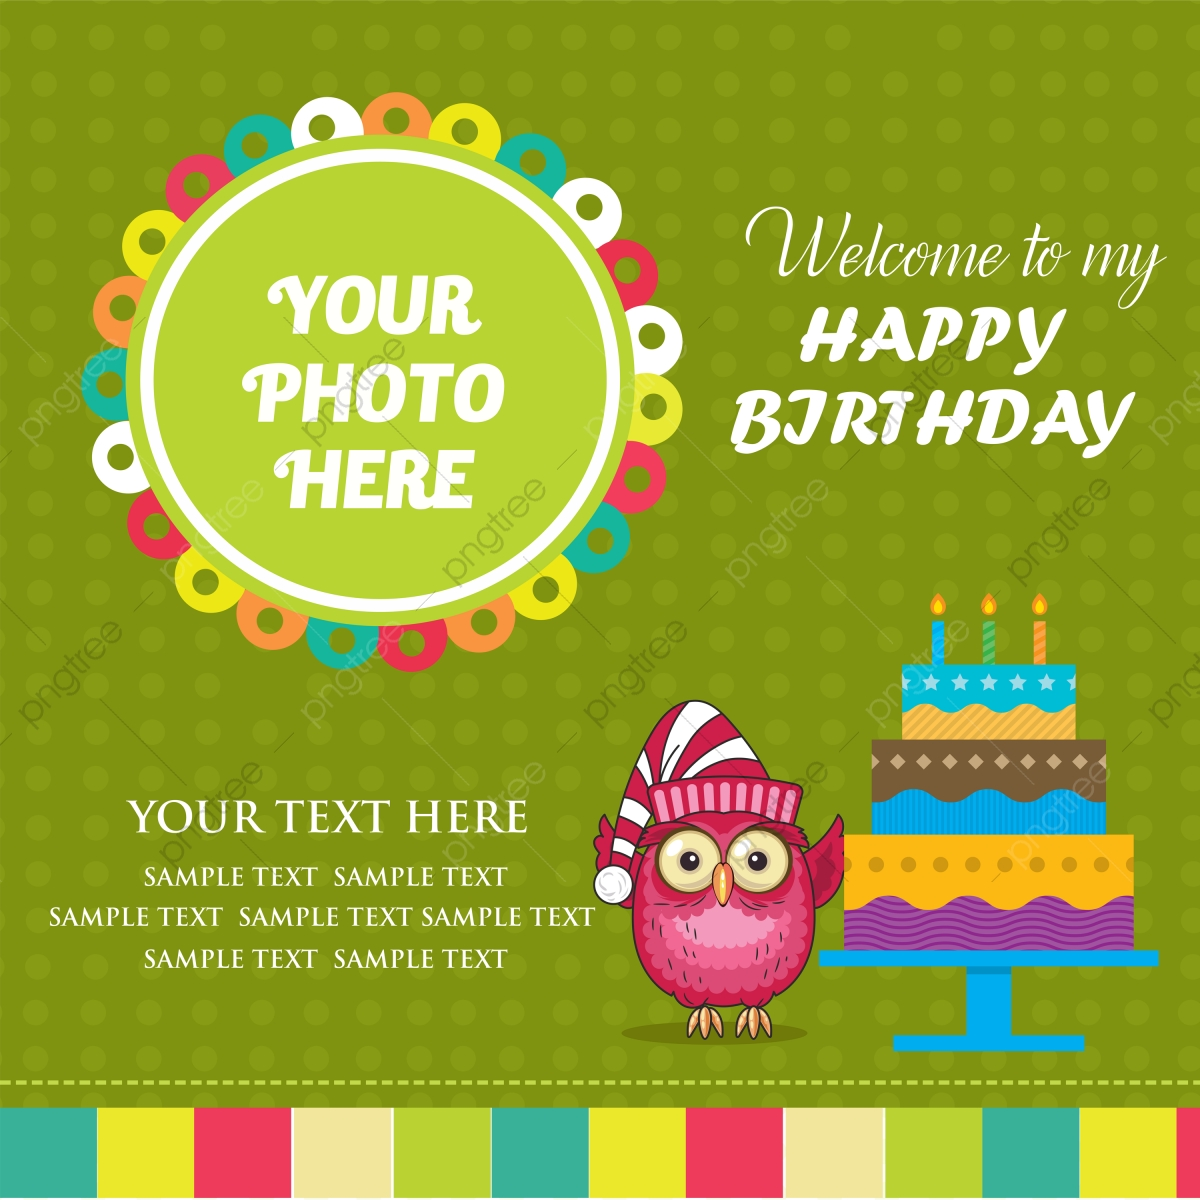 Birthday Cute Green Invitation Card Design, Green Invitation ...